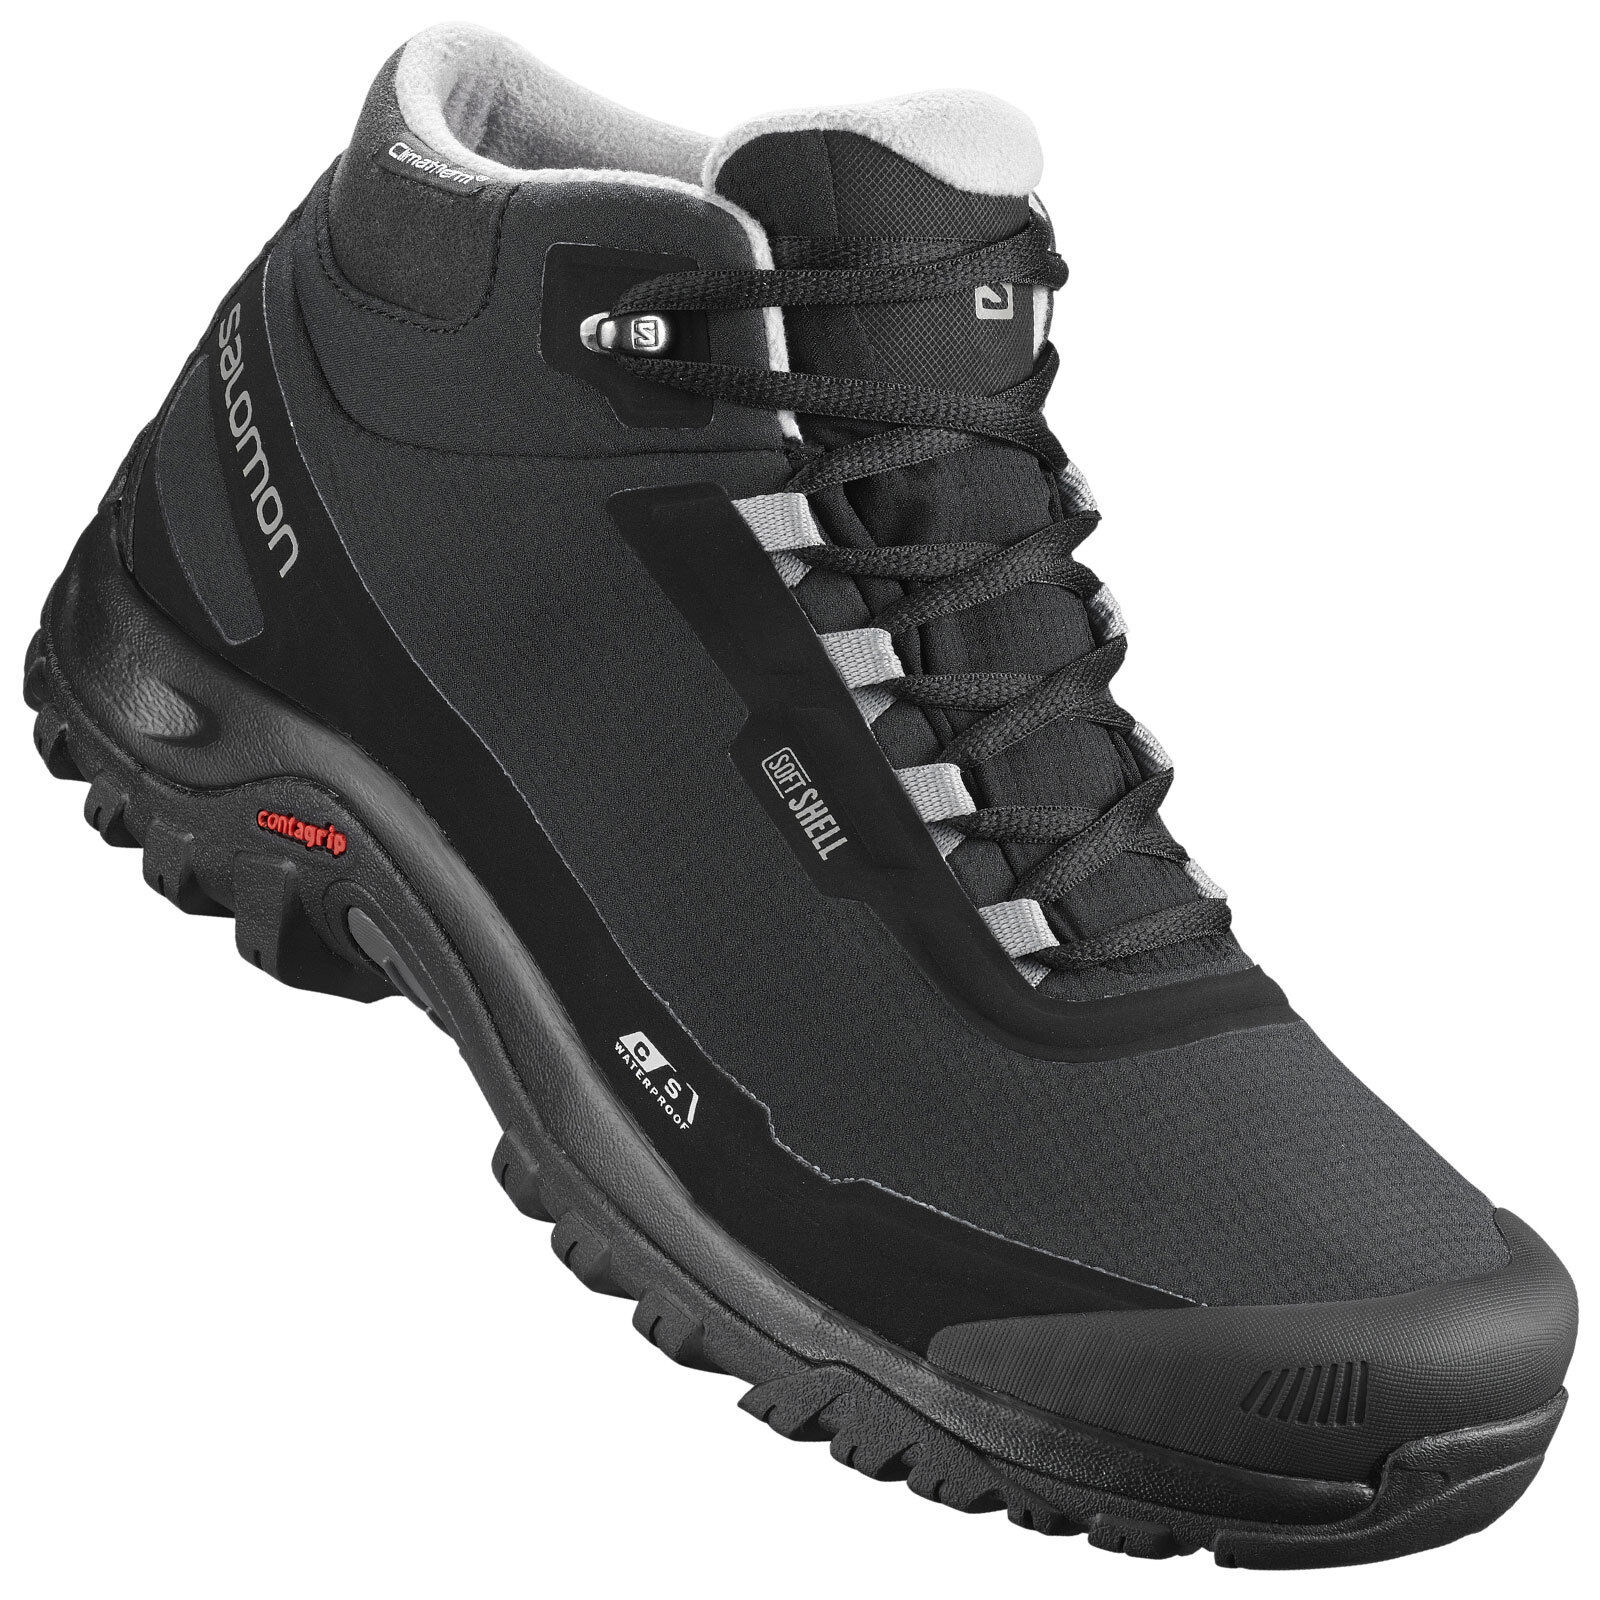 Salomon Shelter CSWP Herren Winterschuhe Winter Boots Schuhe Wasserdicht